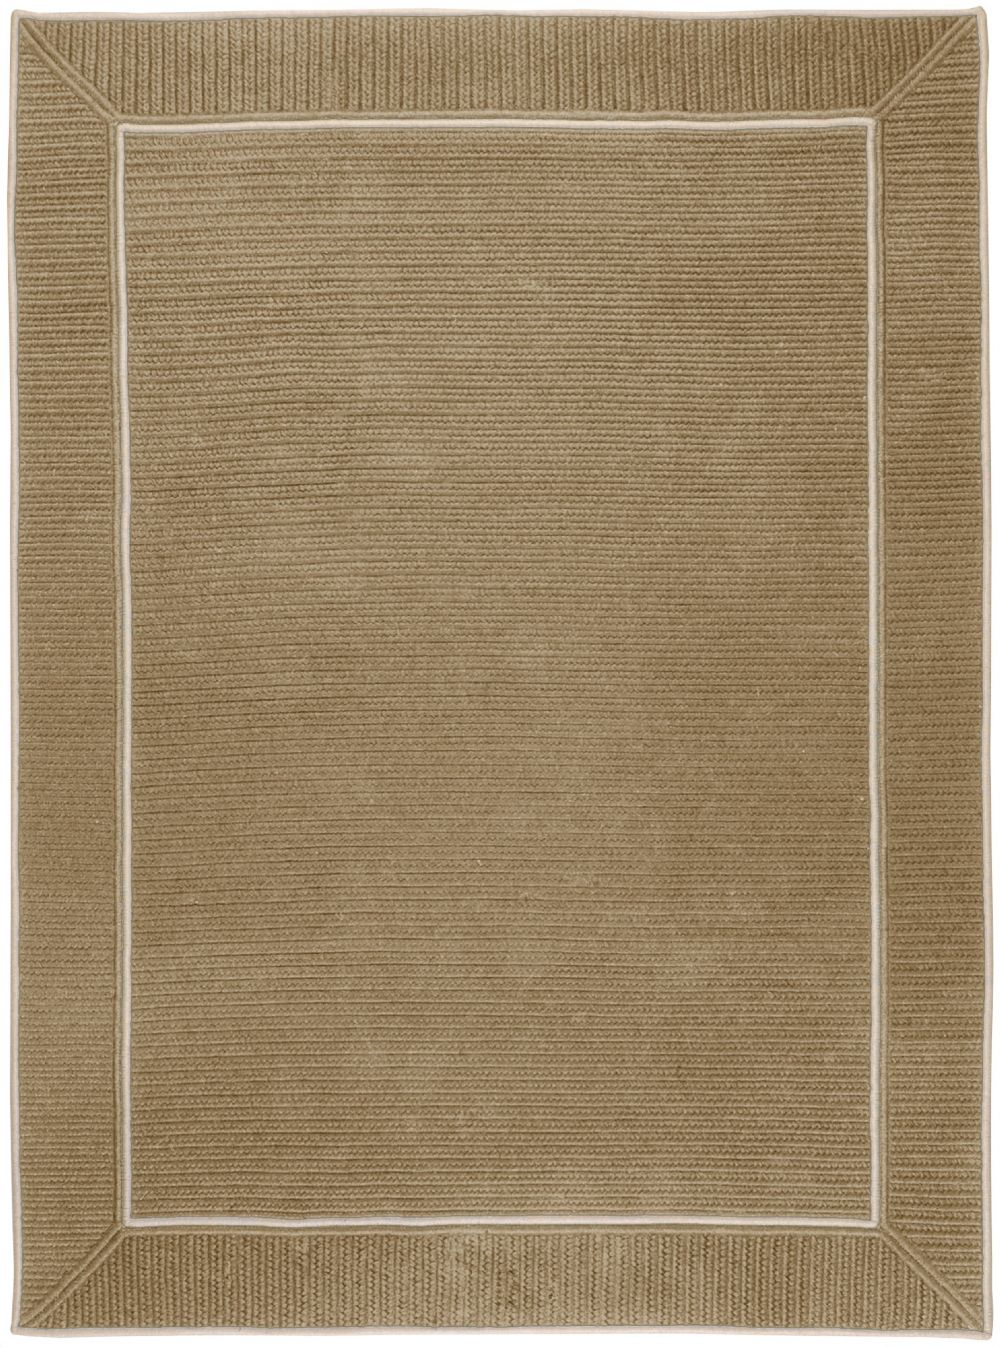 surya portofino solid/striped area rug collection